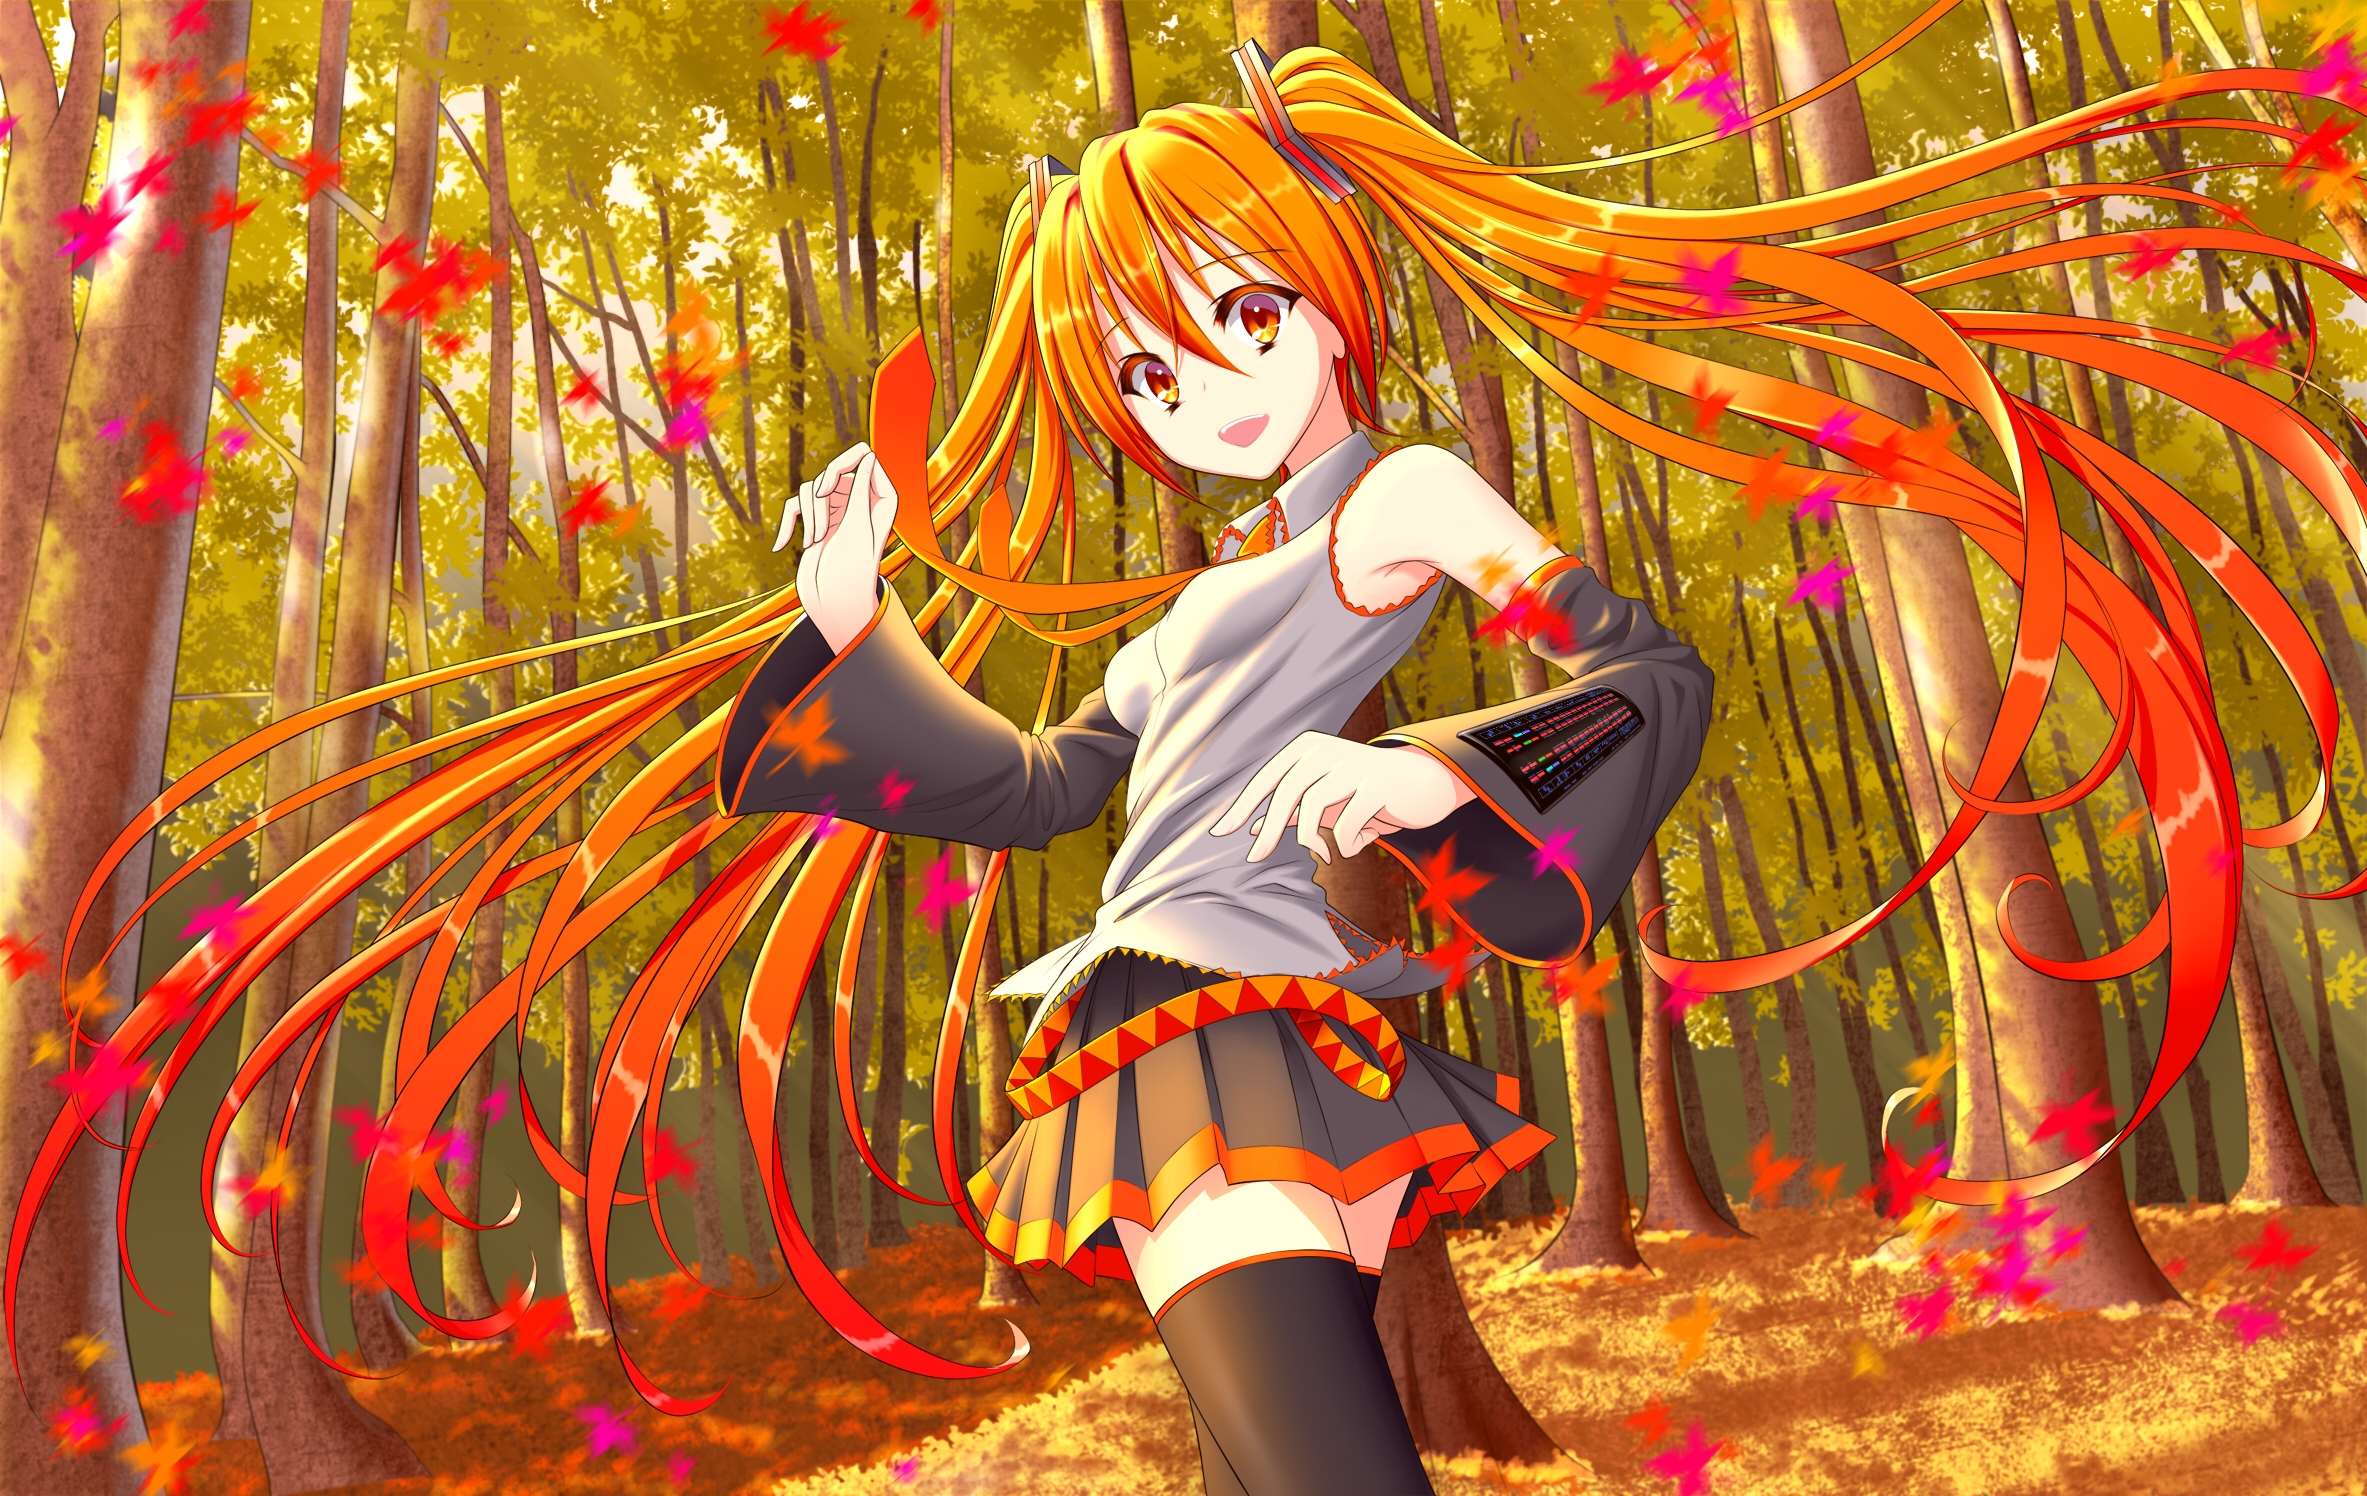 Touhou Fall Wallpaper Vocaloid Autumn Forest Hatsune Miku Leaves Long Hair